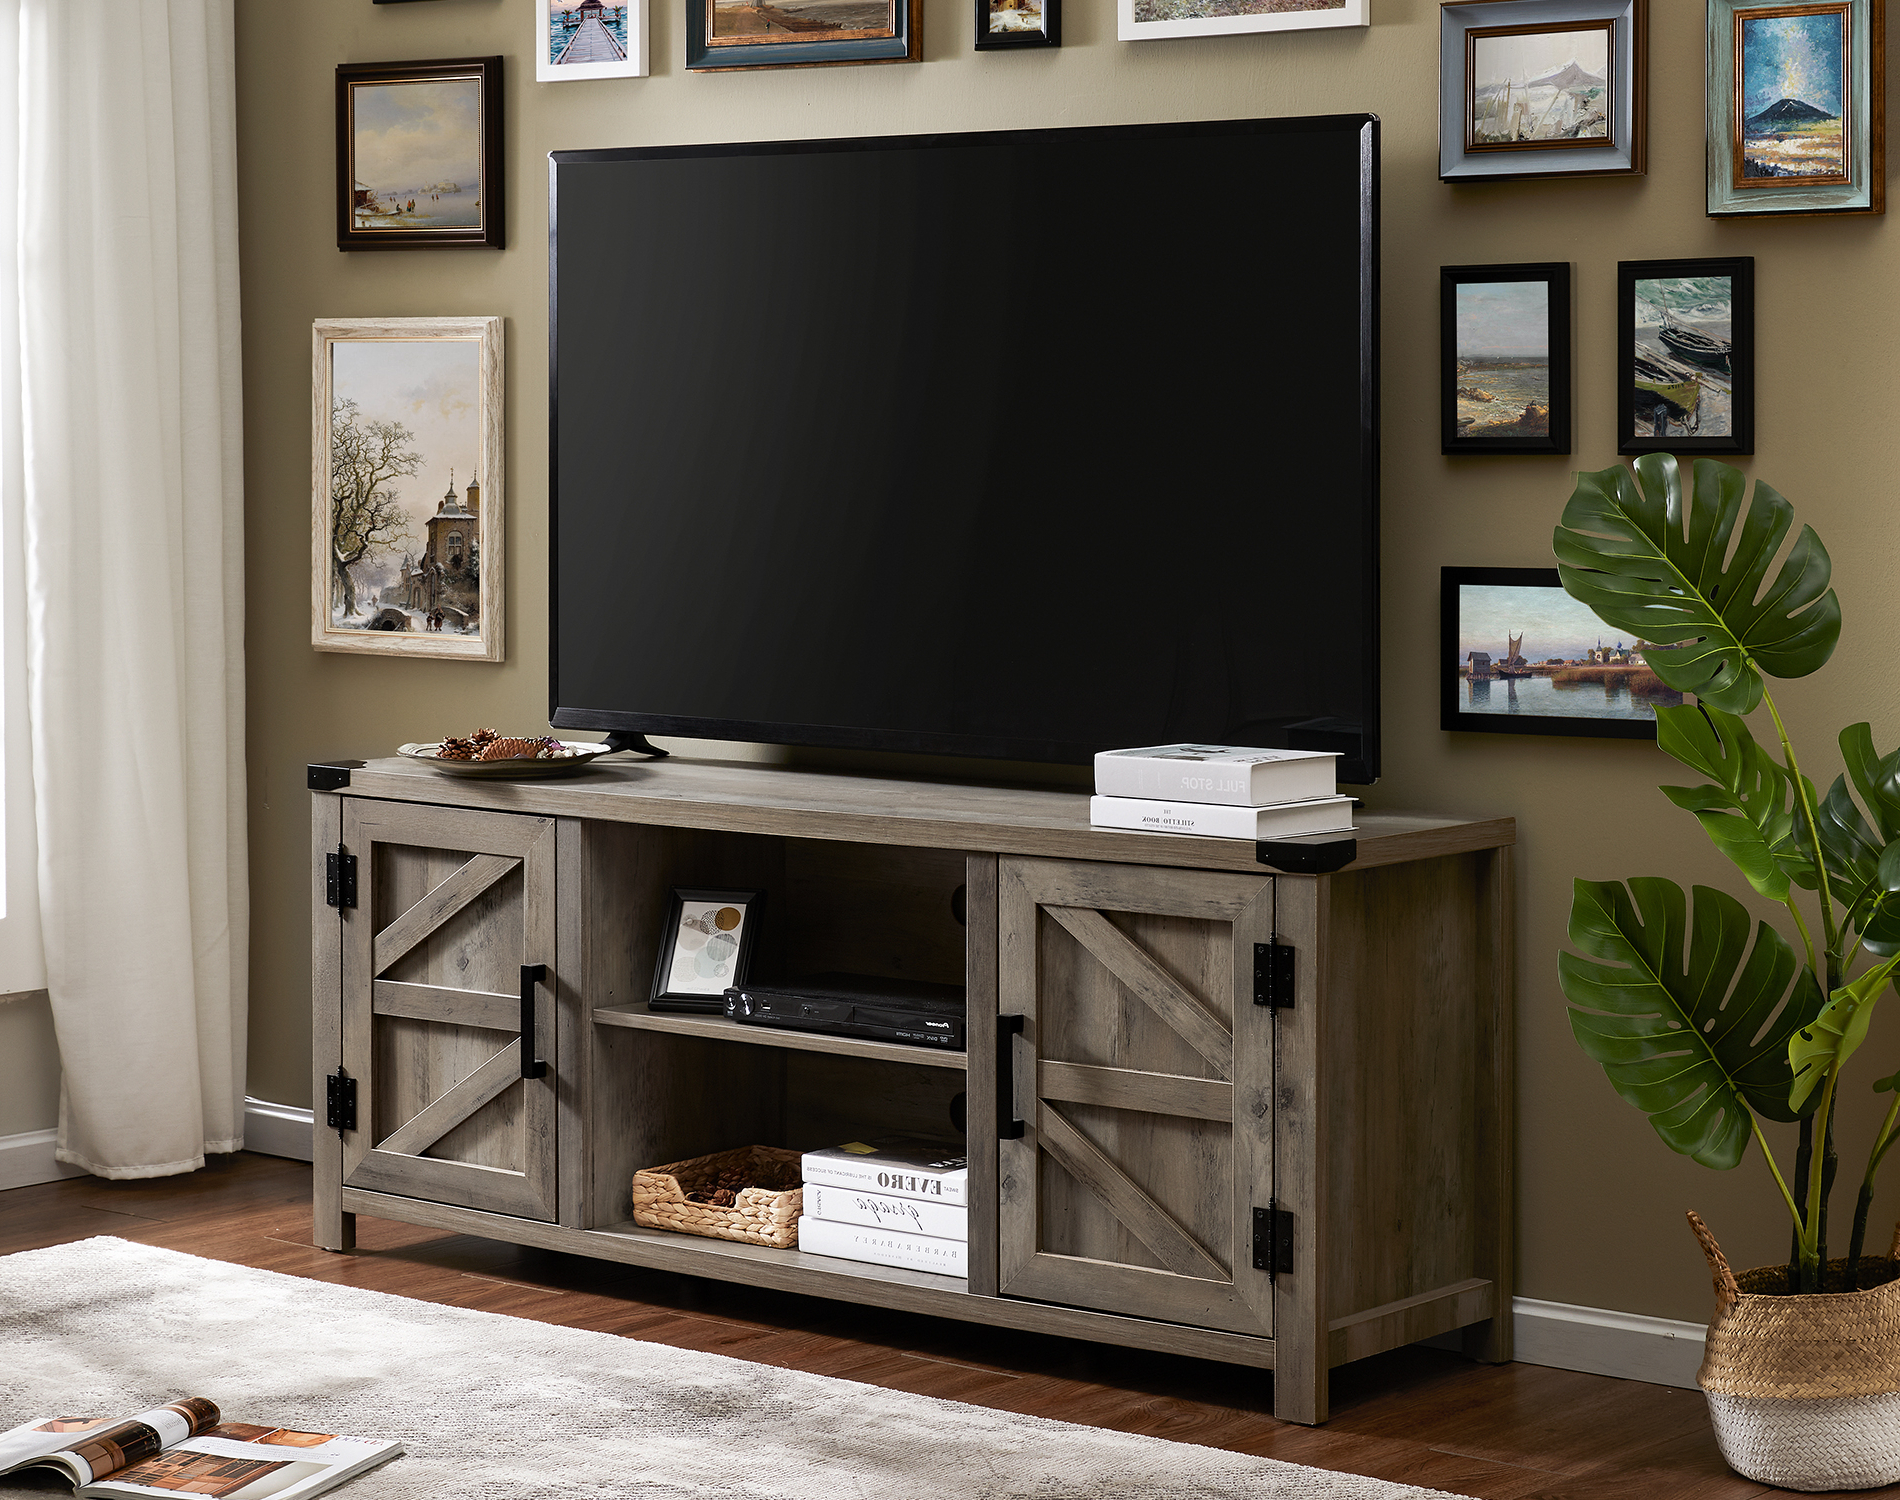 Fitueyes Farmhouse Barn Door Wood Tv Stands For 70 Inch Within Corona Grey Flat Screen Tv Unit Stands (View 3 of 20)